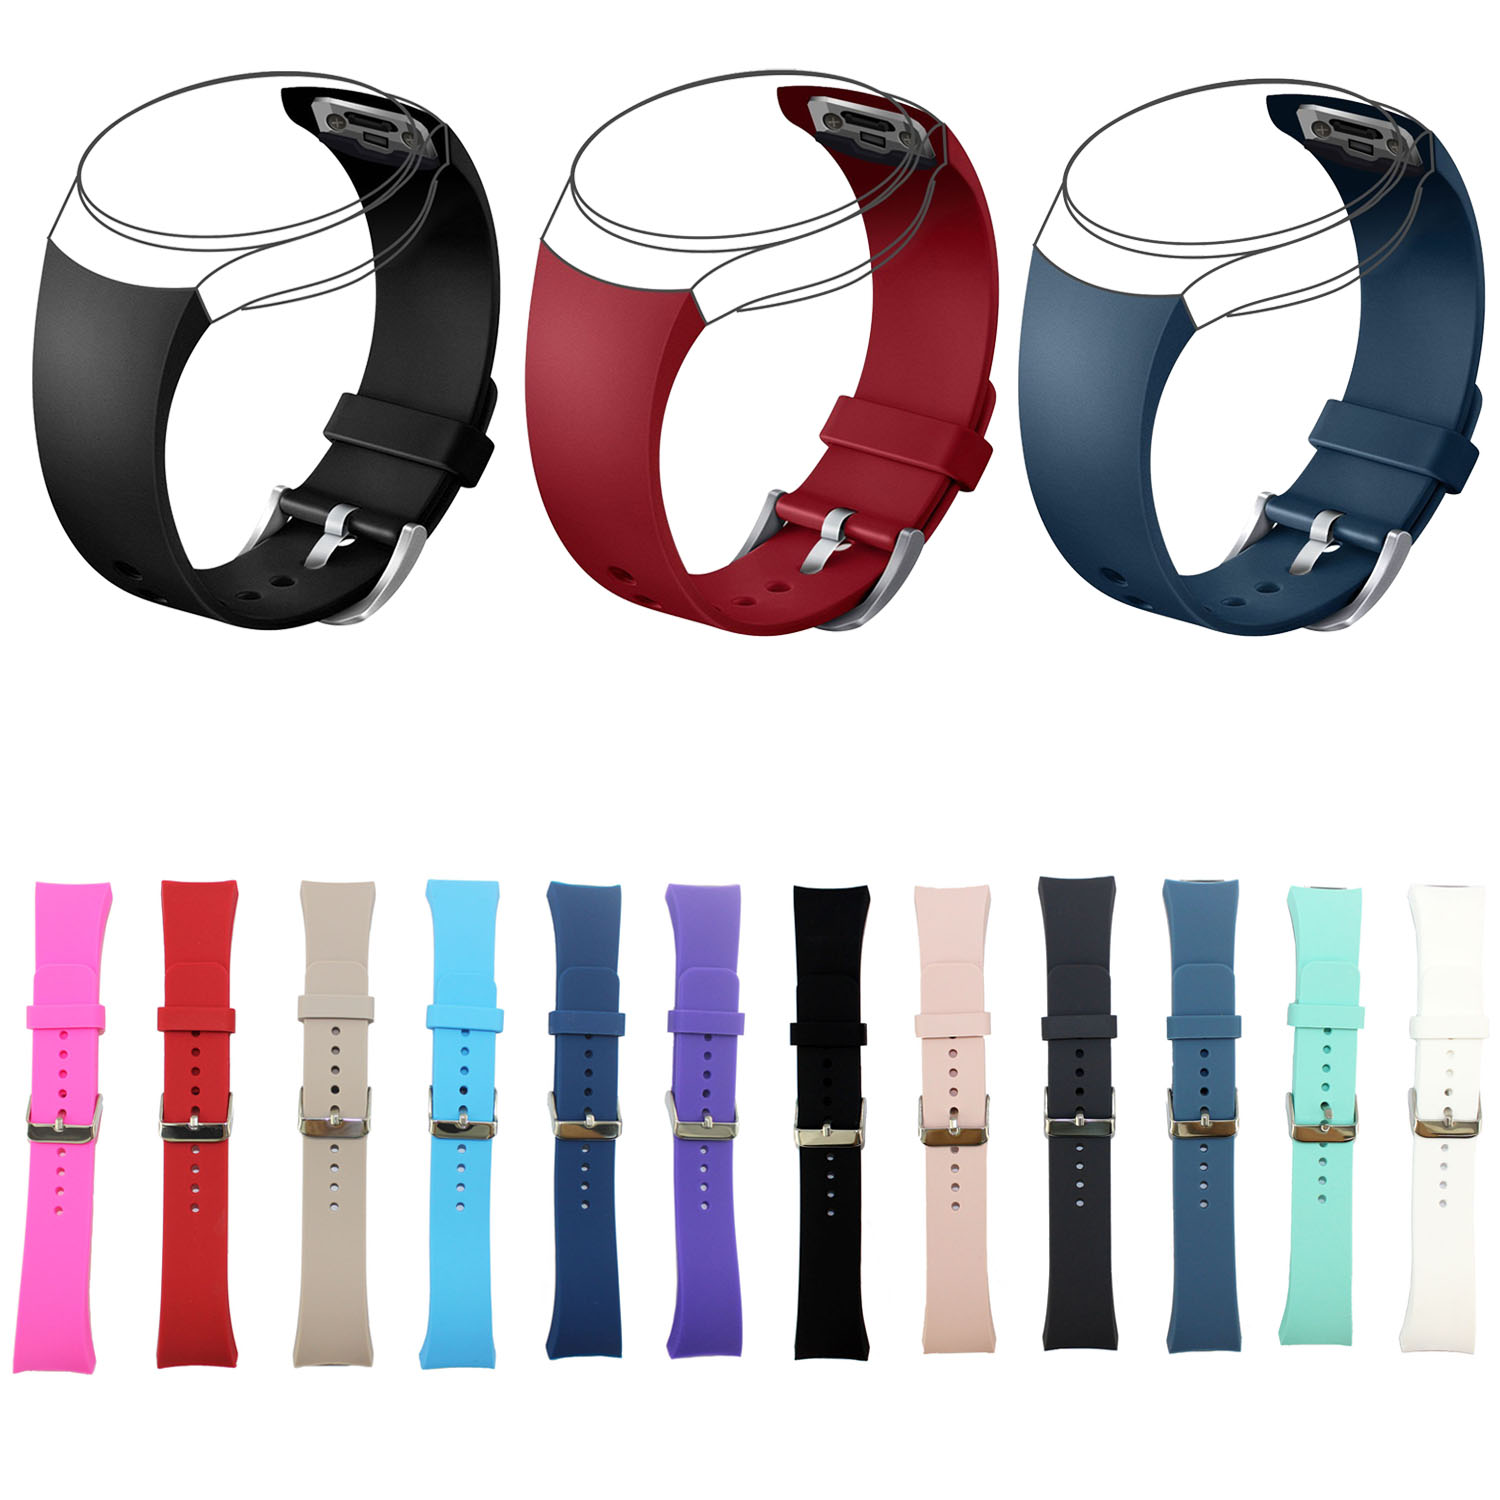 Colorful Sports Silicone Wrist Strap for Samsung Galaxy Gear S2 SM-R720 Band Metal Buckle Rubber Bracelet Replacement Wristbands jansin 22mm watchband for garmin fenix 5 easy fit silicone replacement band sports silicone wristband for forerunner 935 gps